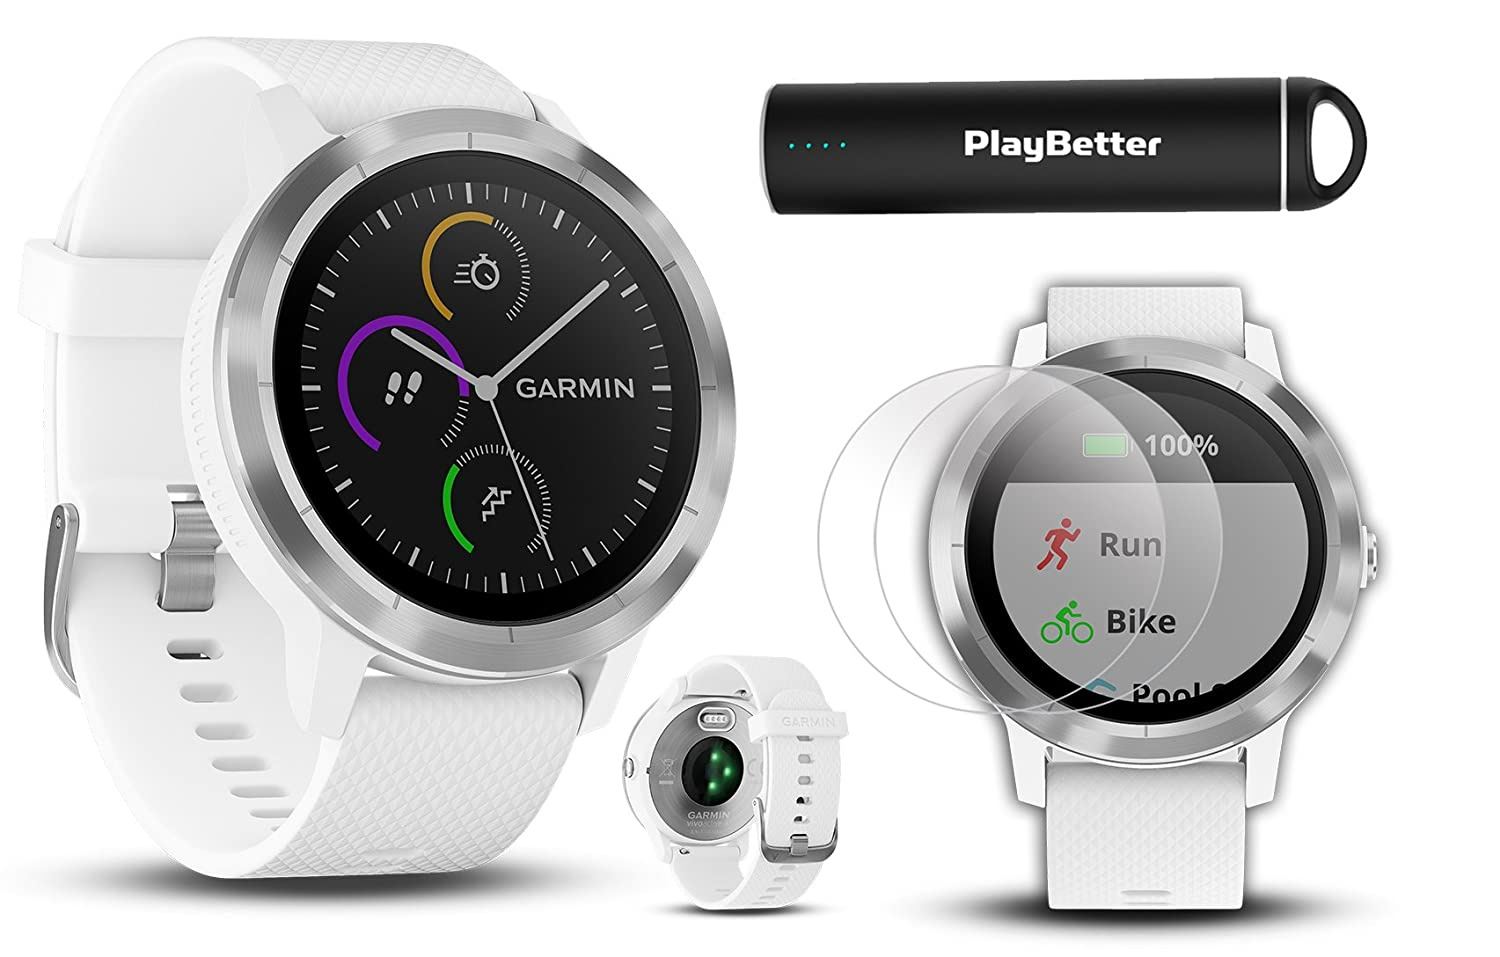 Garmin vivoactive 3 (White & Stainless) Fitness GPS Watch Power Bundle | with HD Screen Protector Film (x4) & PlayBetter USB Portable Charger | ...